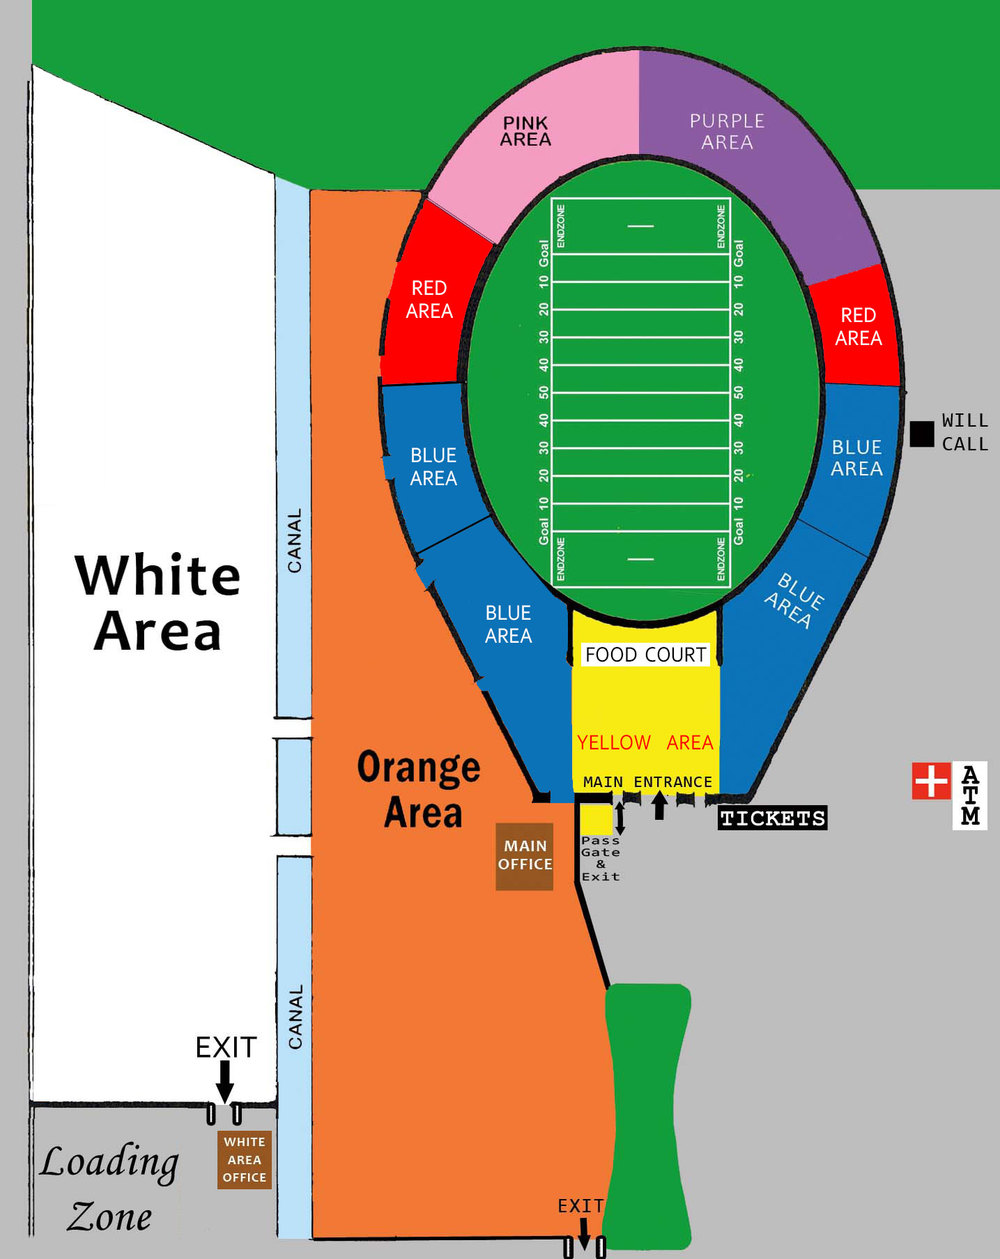 GENERAL MAP OF ROSE BOWL FLEA MARKET VIA R.G. CANNING ATTRACTIONS